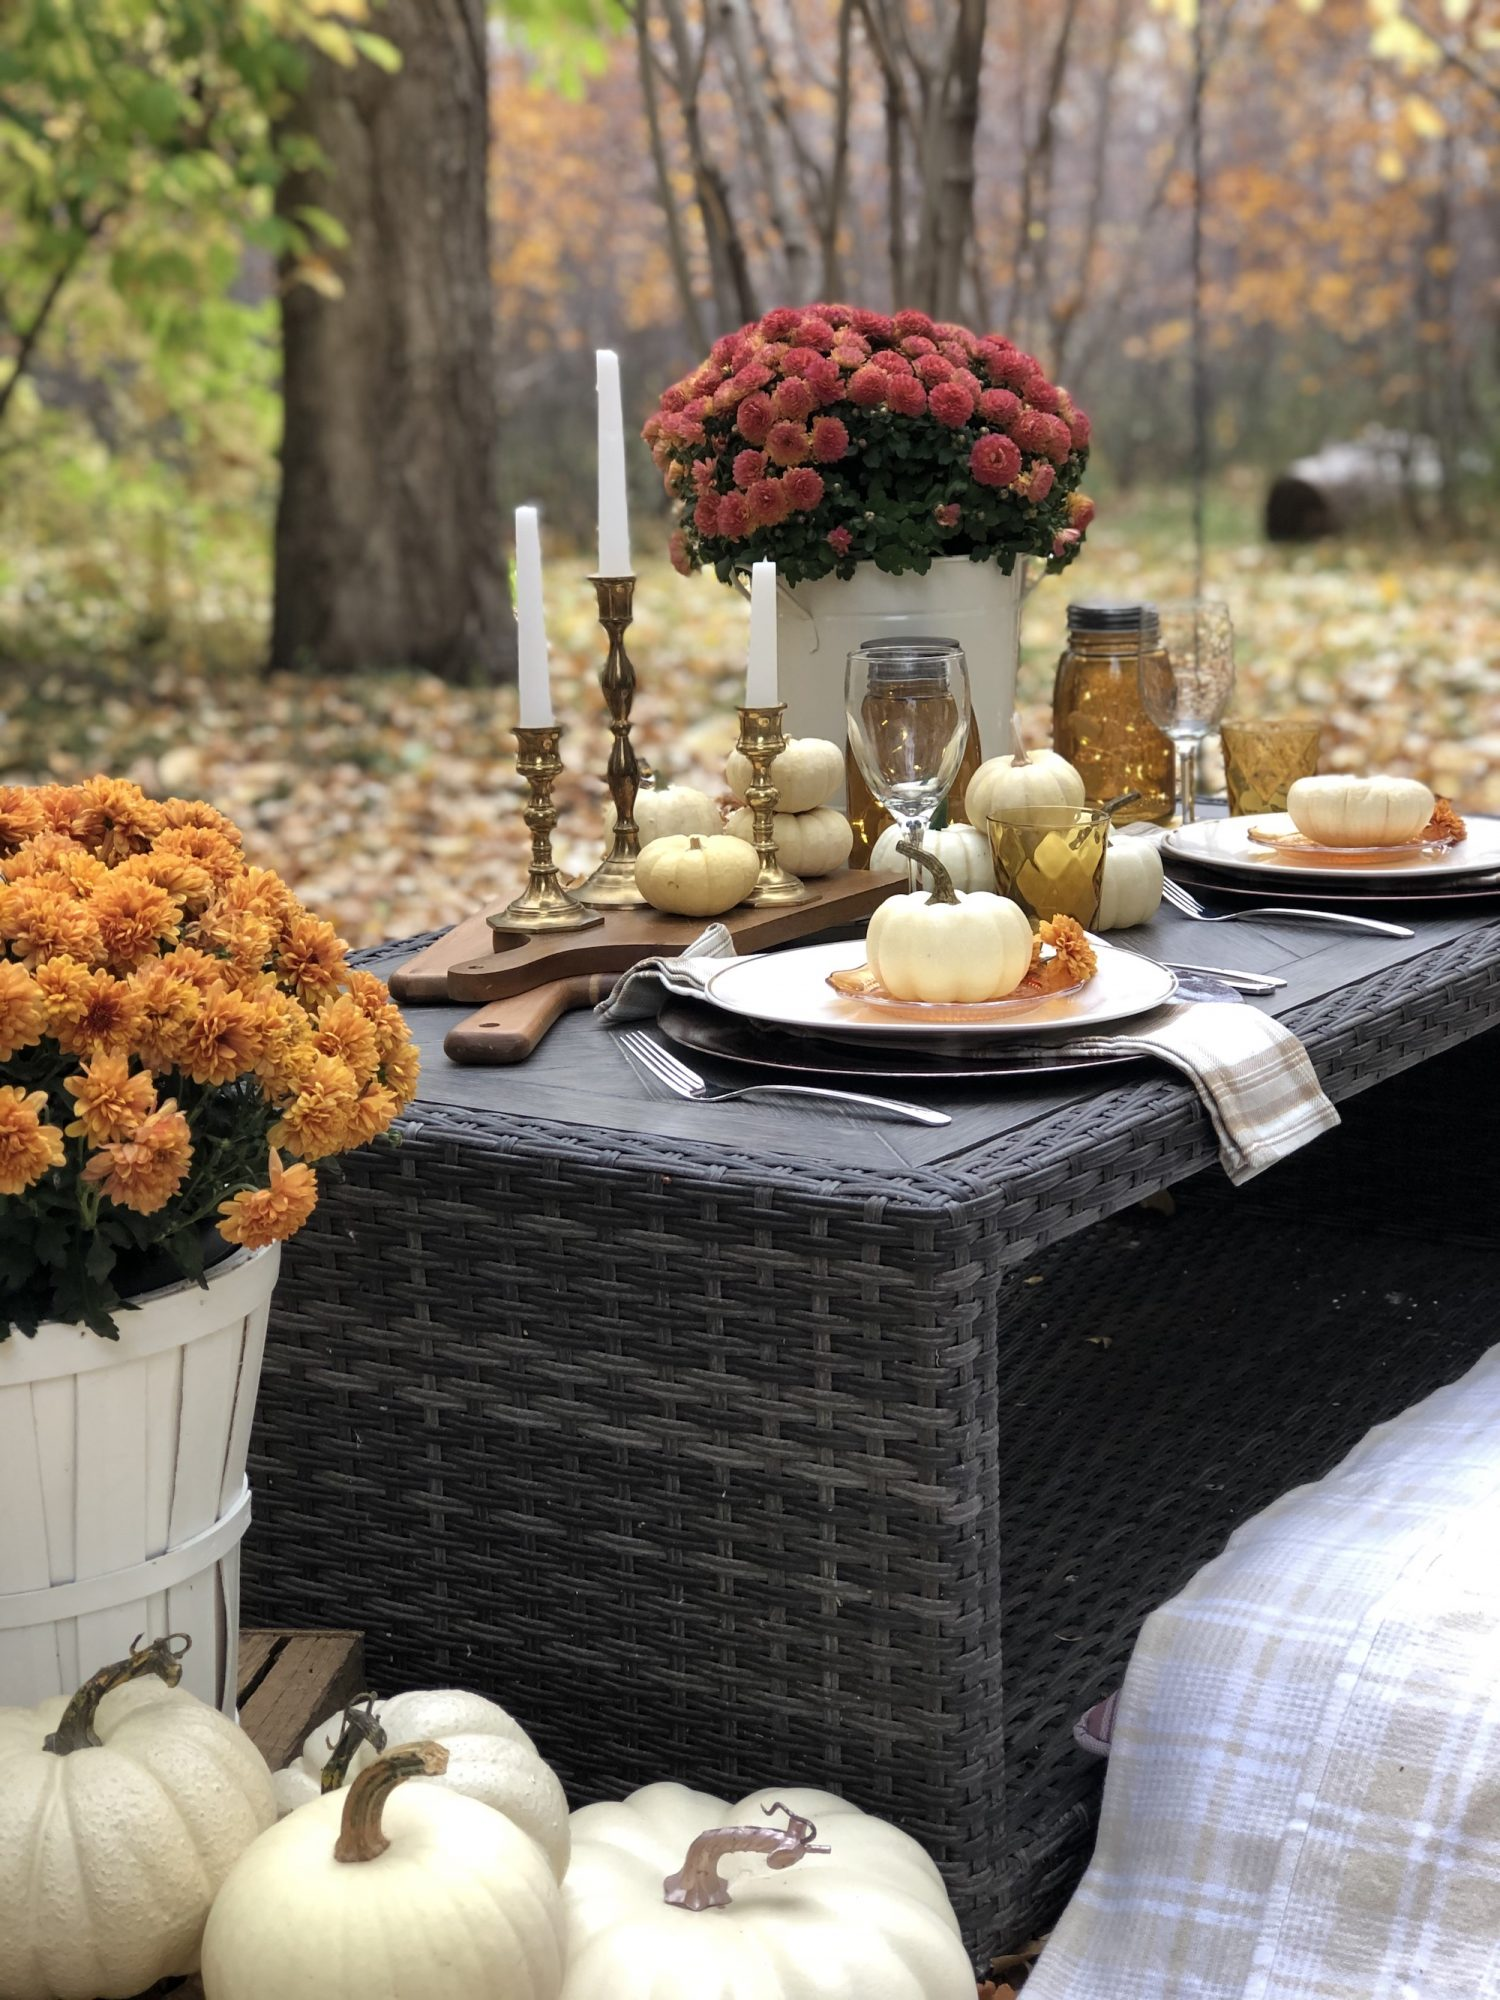 Thanksgiving Table Decor Ideas, Outdoor table with mums